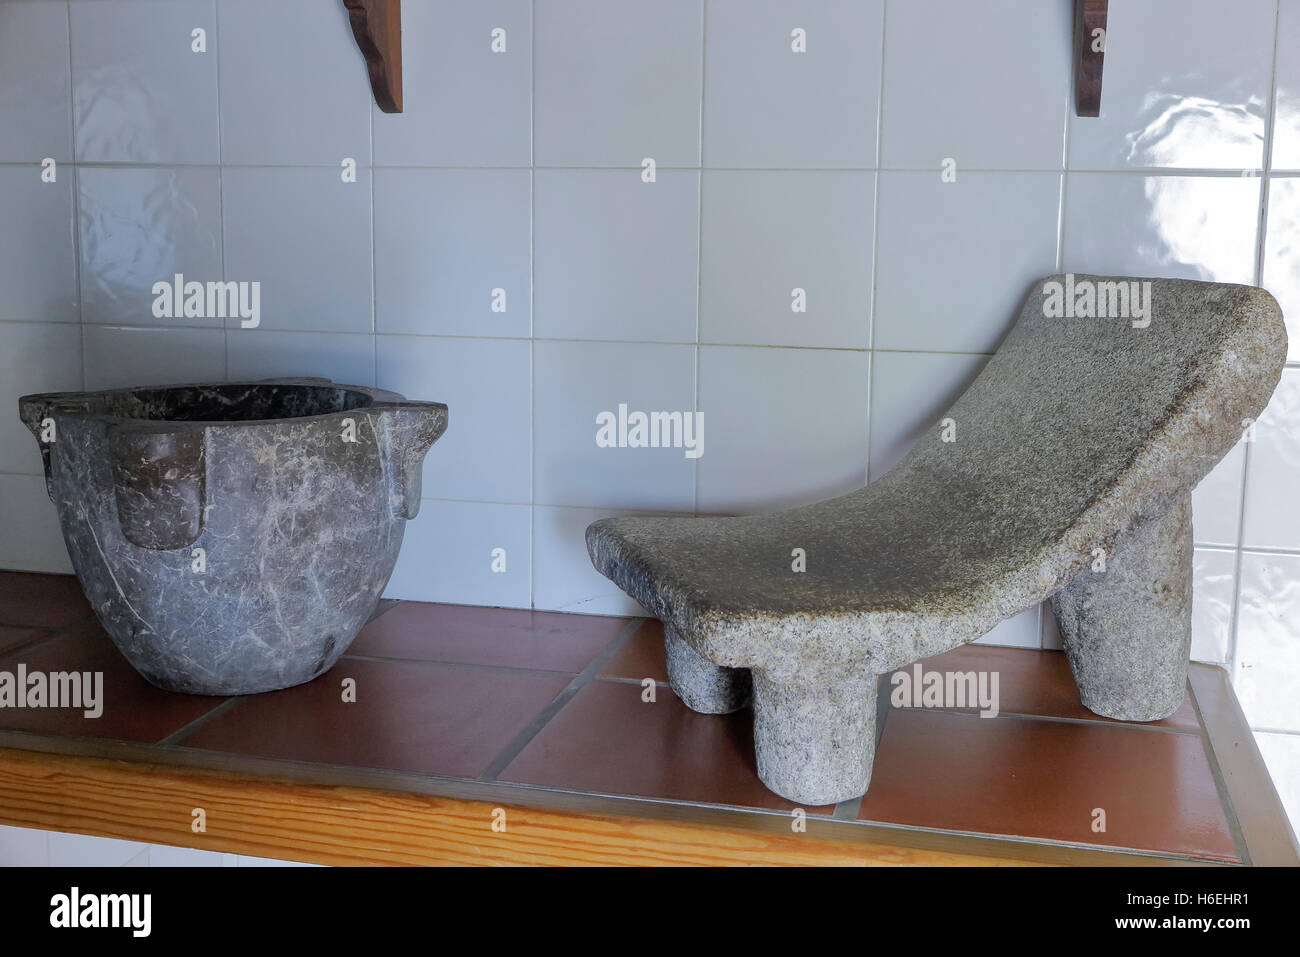 mortar and stone to knead in the kitchen Stock Photo